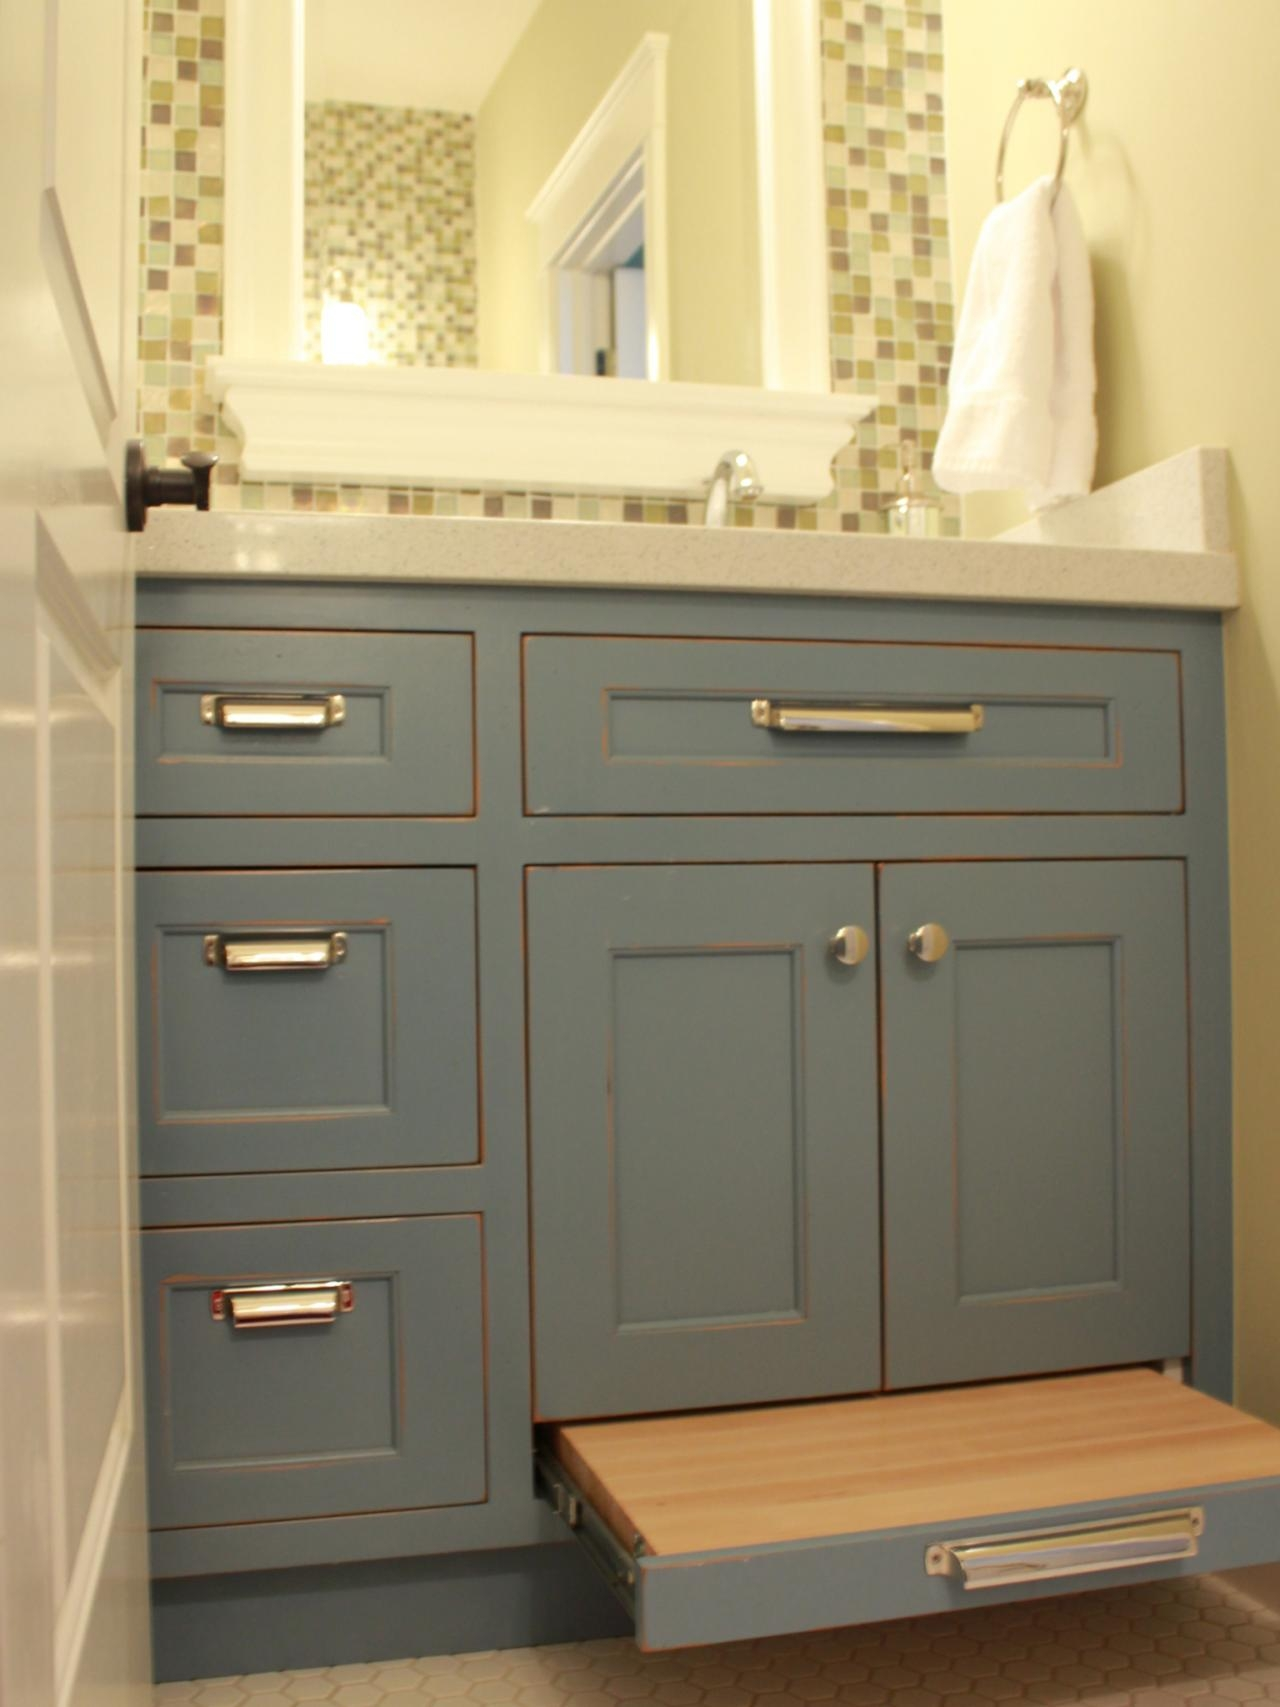 Small Bathroom Vanity Storage Ideas1280 X 1707